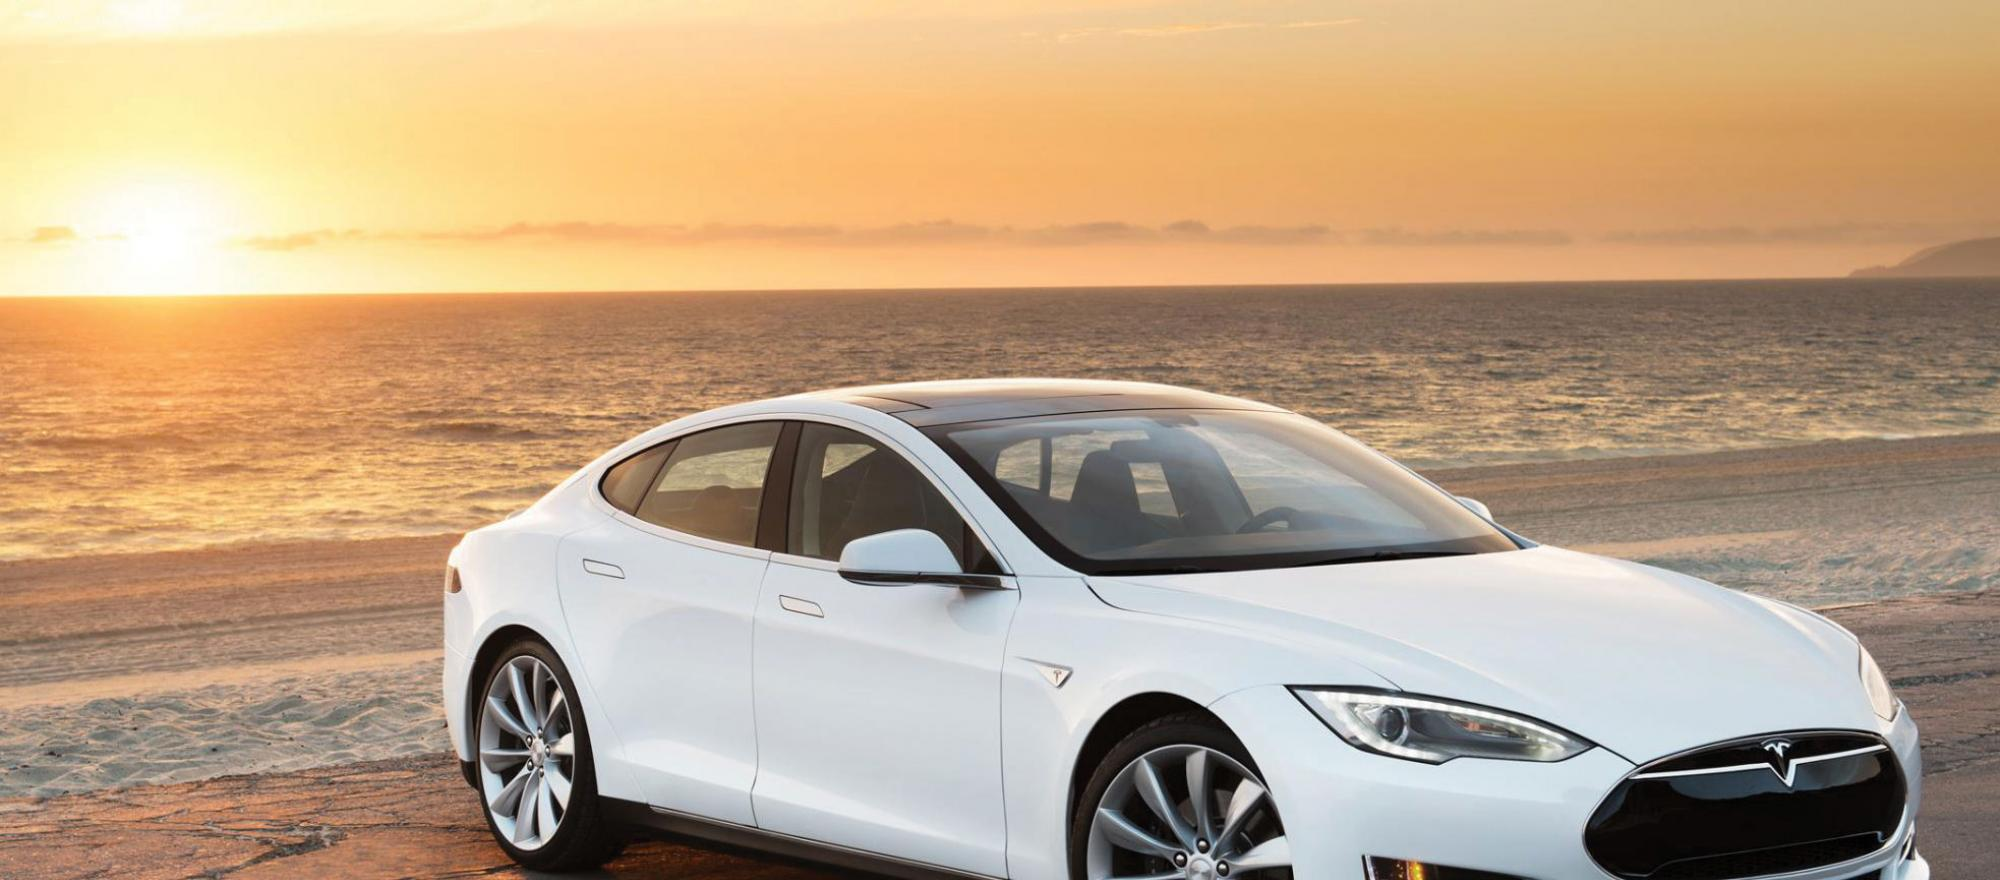 If you're thinking about buying a luxury electric car, there is only one choice, says our reviewer: the Tesla Model S.